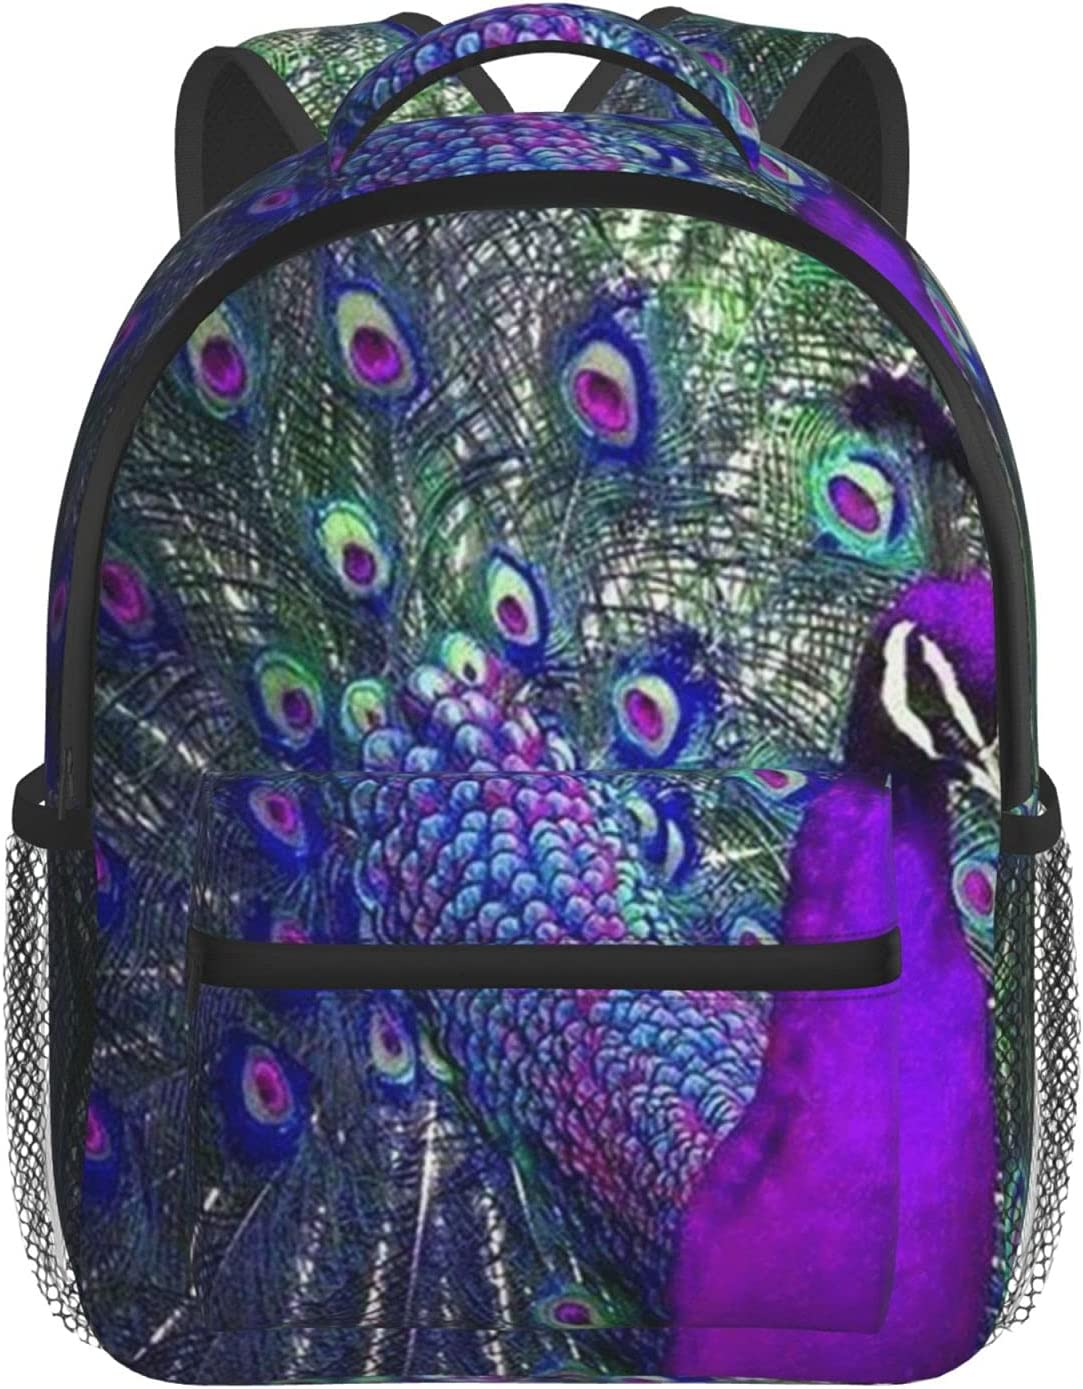 Peacock discount Kids Backpack For Free shipping on posting reviews Toddlers Boys Pres Girls And Daycare